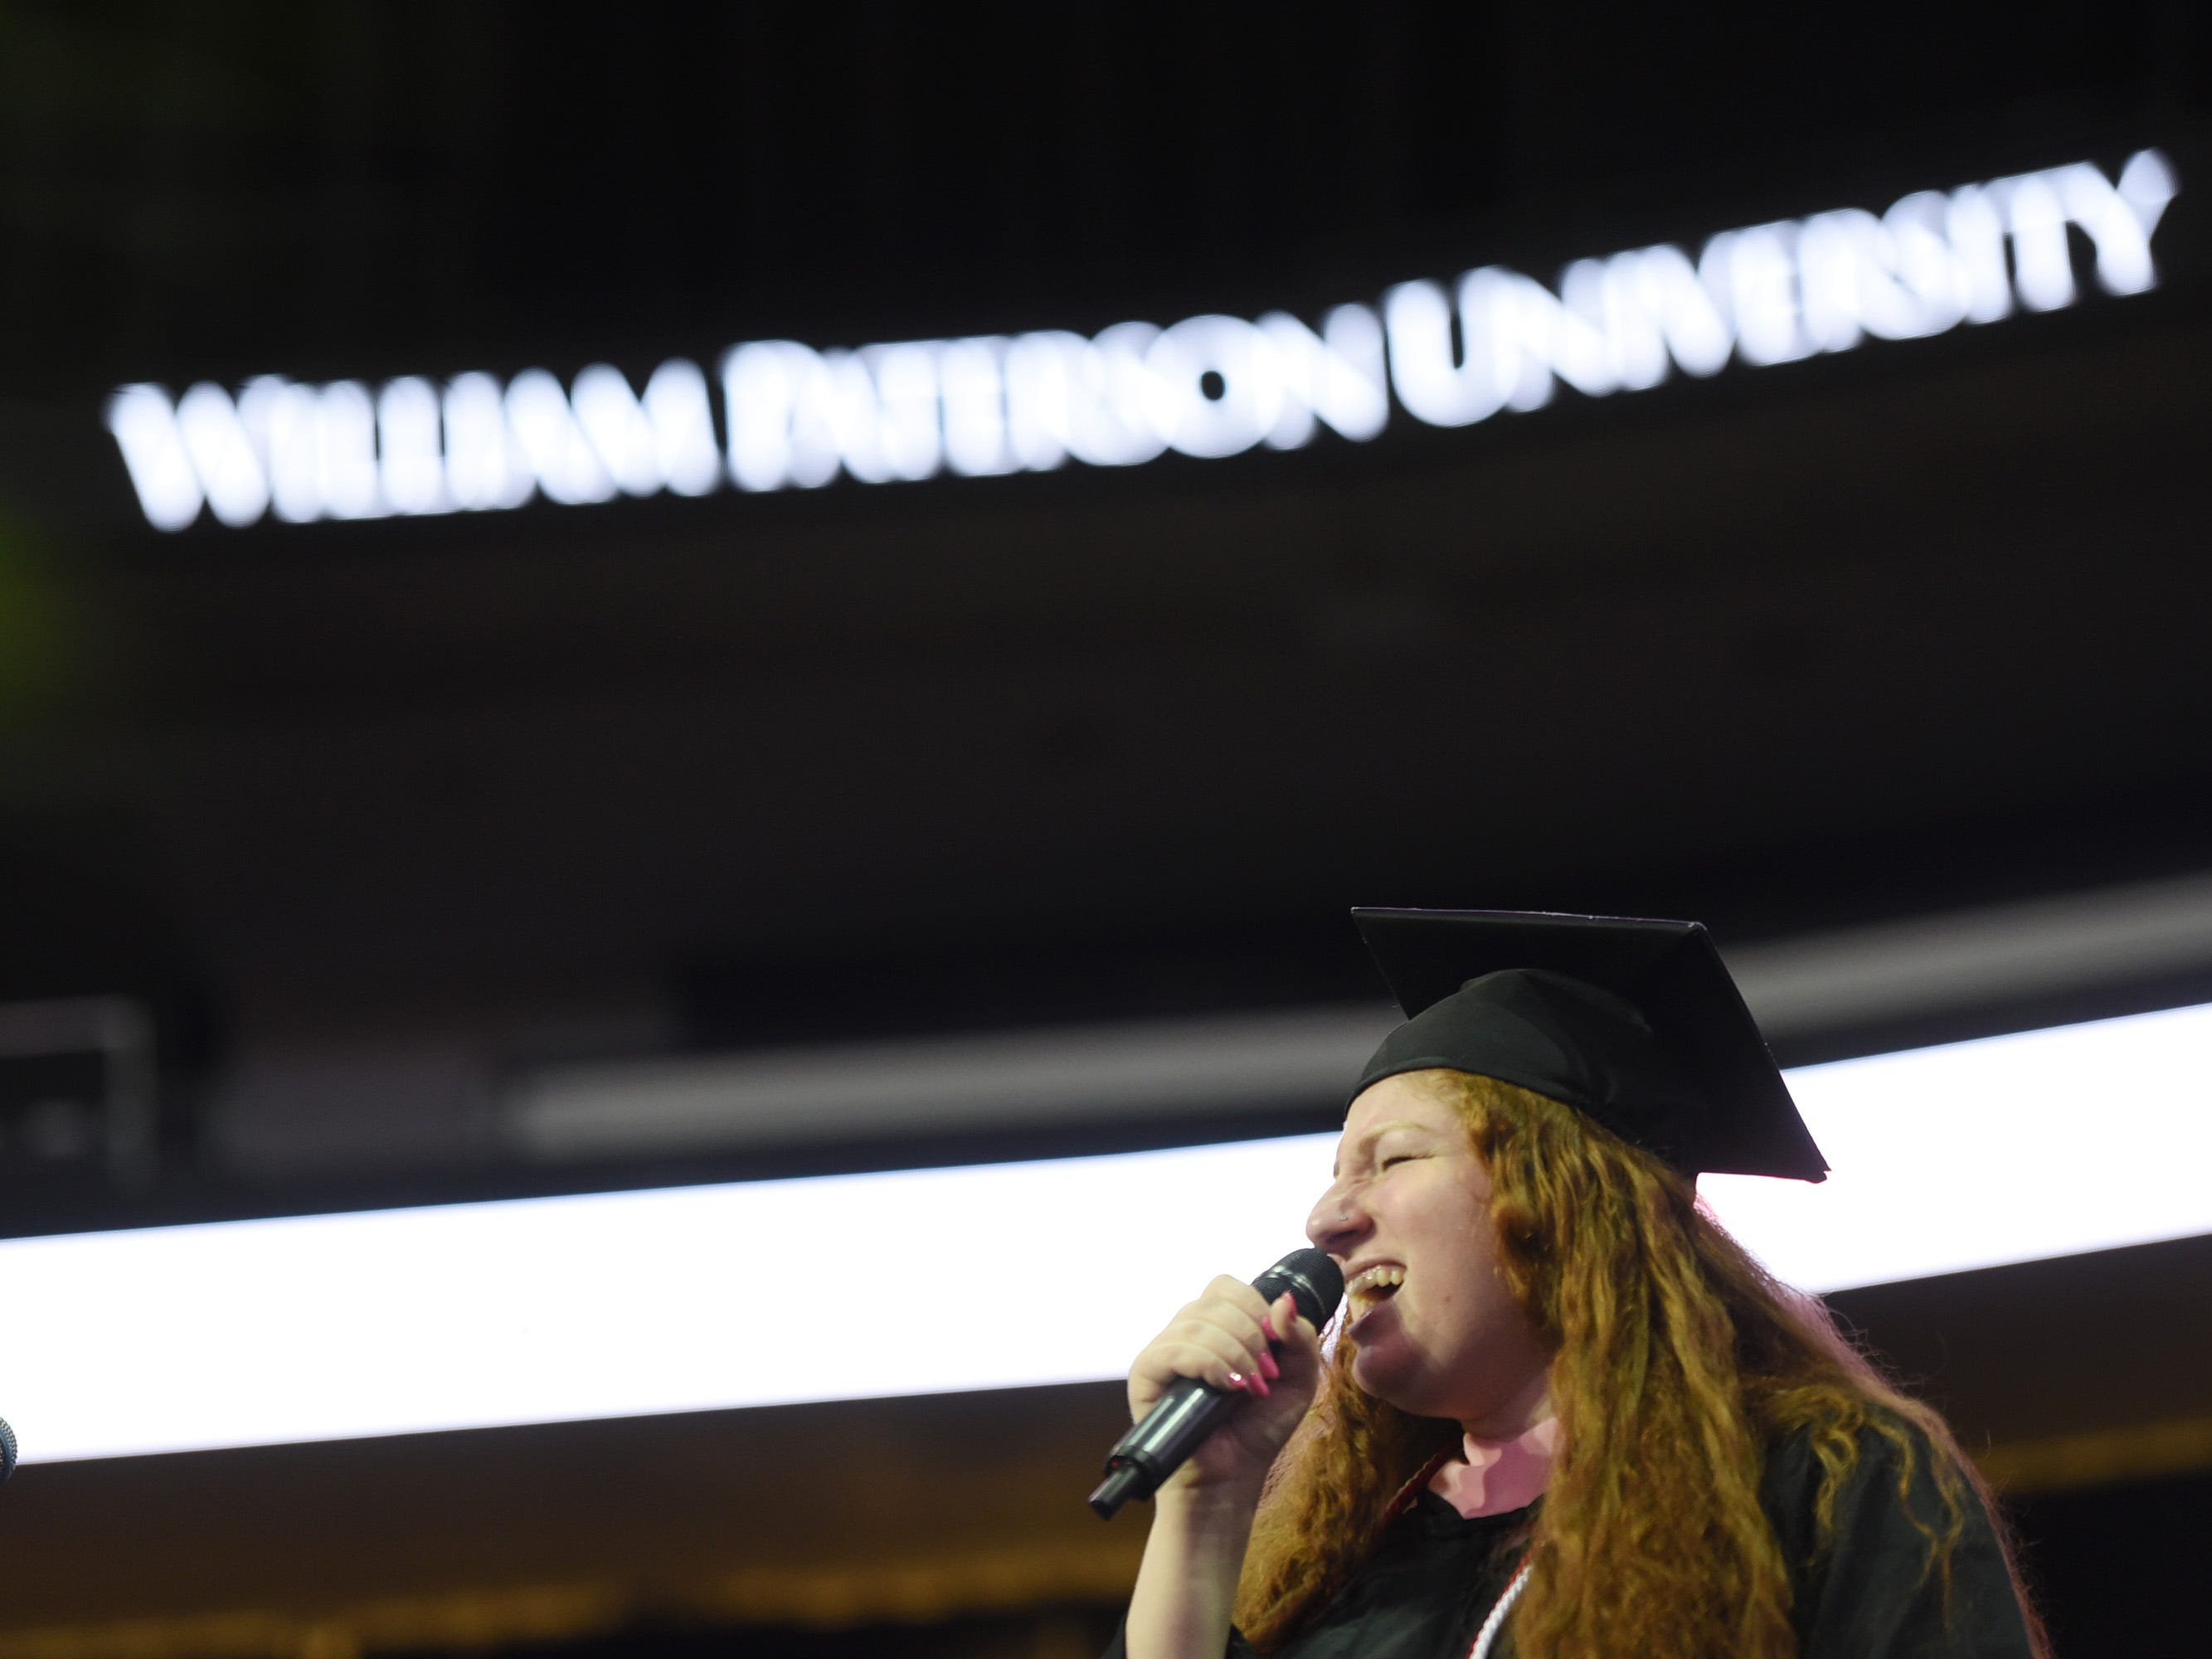 Mollie Friedman, vocalist, Bachelor of Music candidate, sings the National Anthem during the William Paterson University 2019 Commencement at the Prudential Center in Newark on 05/15/19.